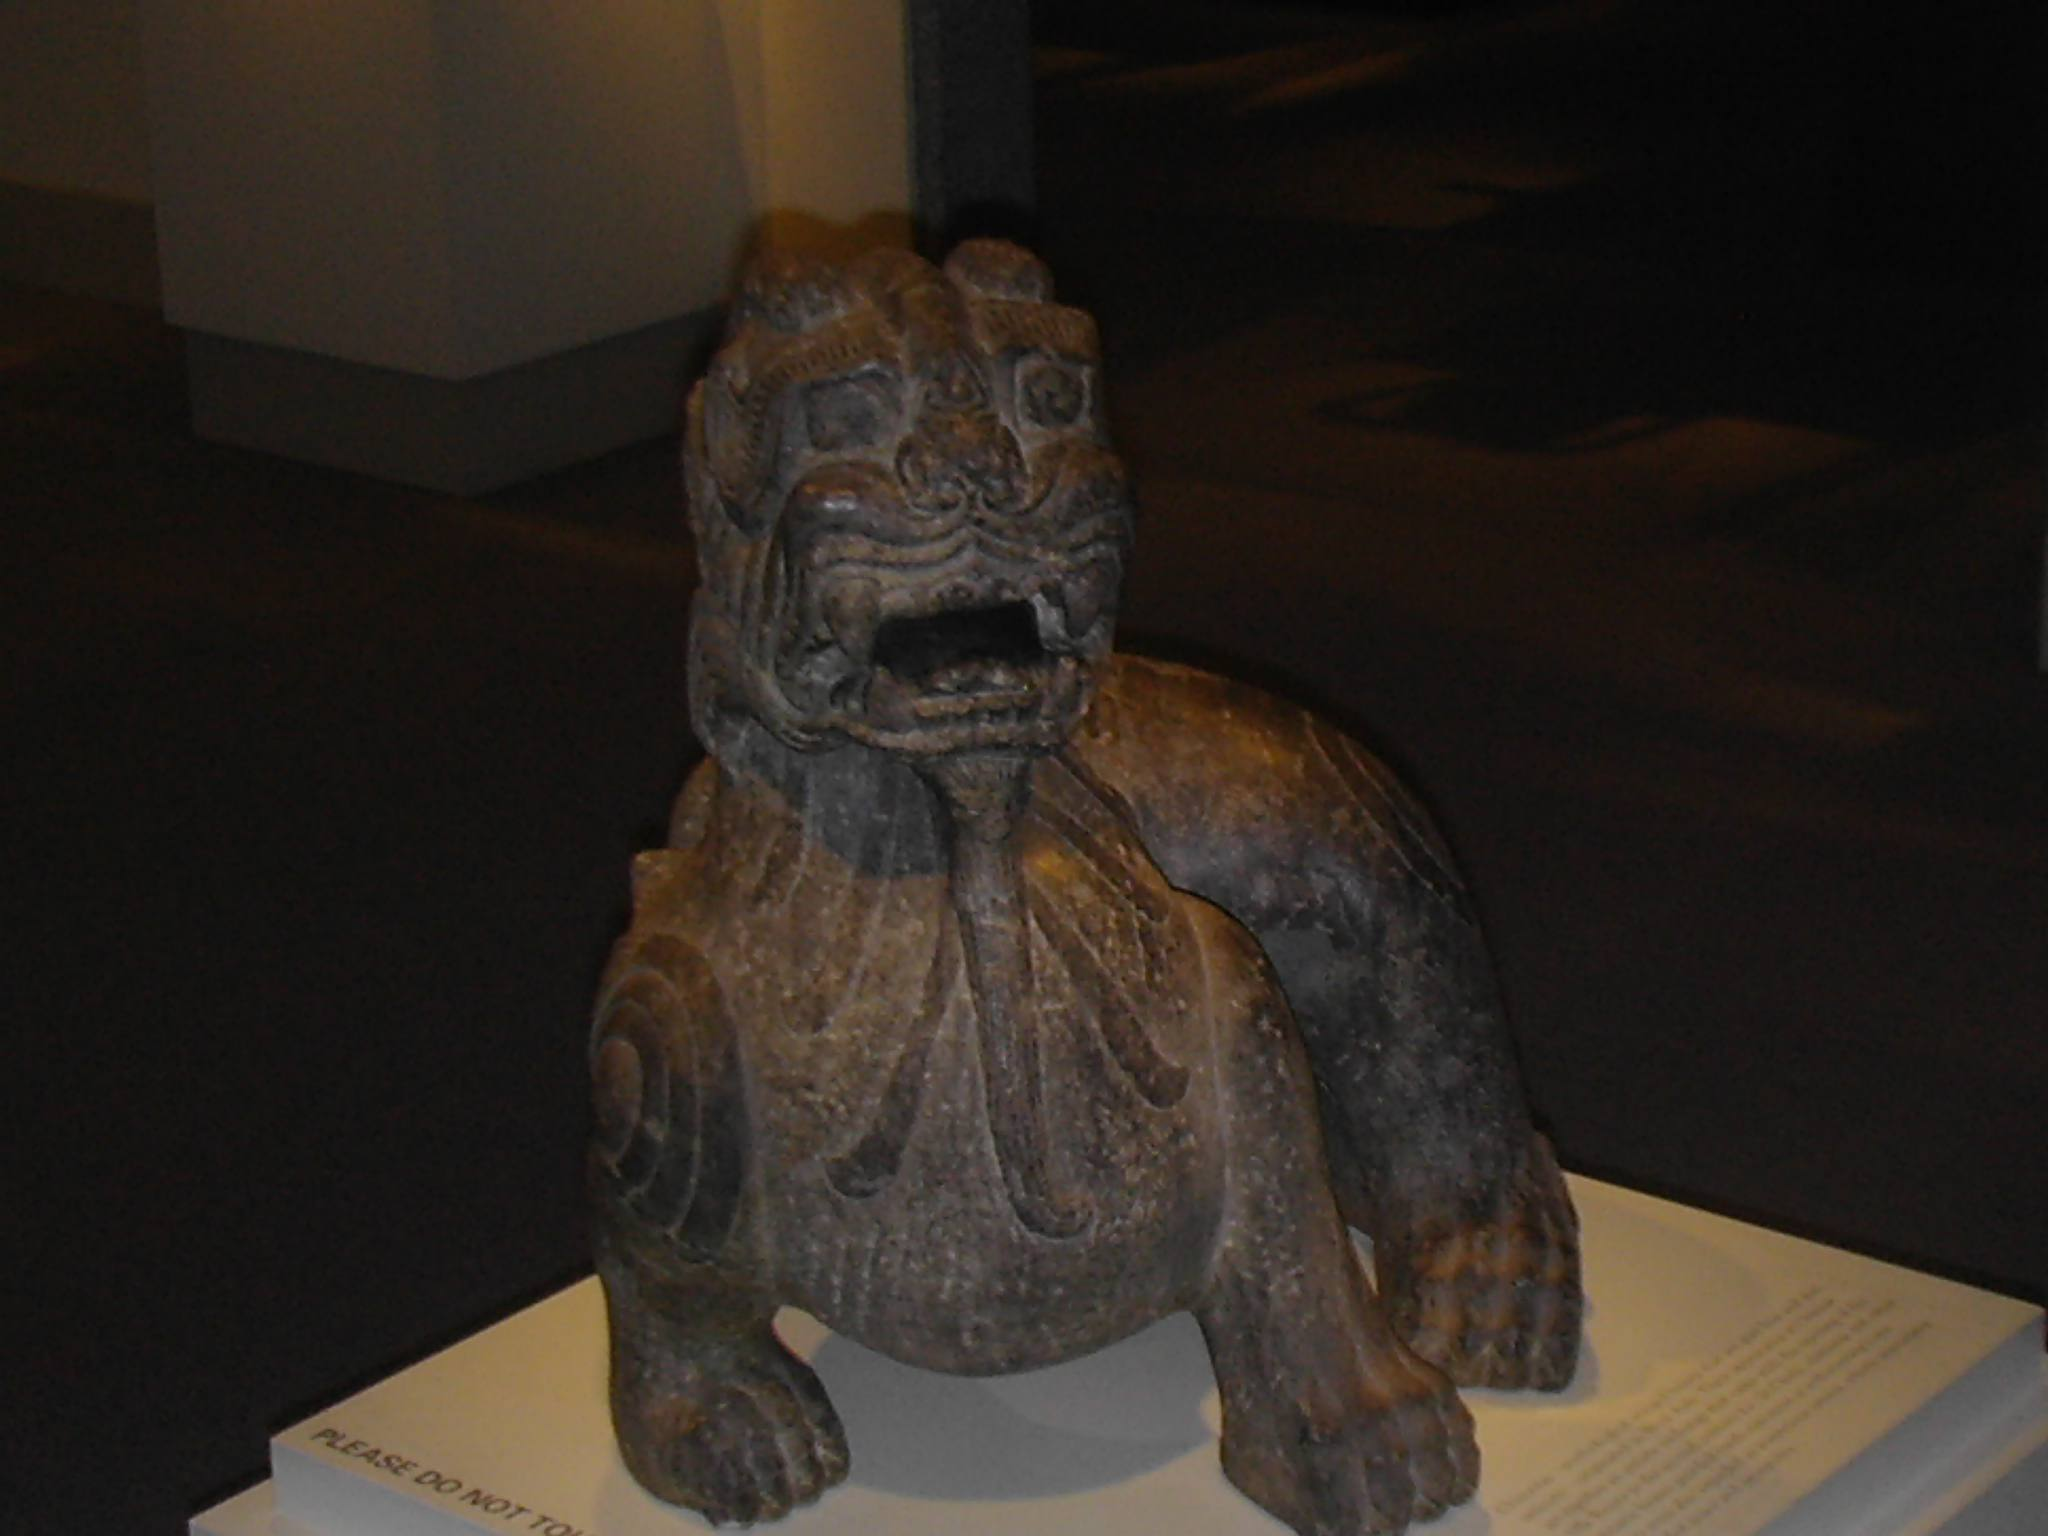 A Chinese limestone chimera statue from the Six Dynasties period on display at a museum.